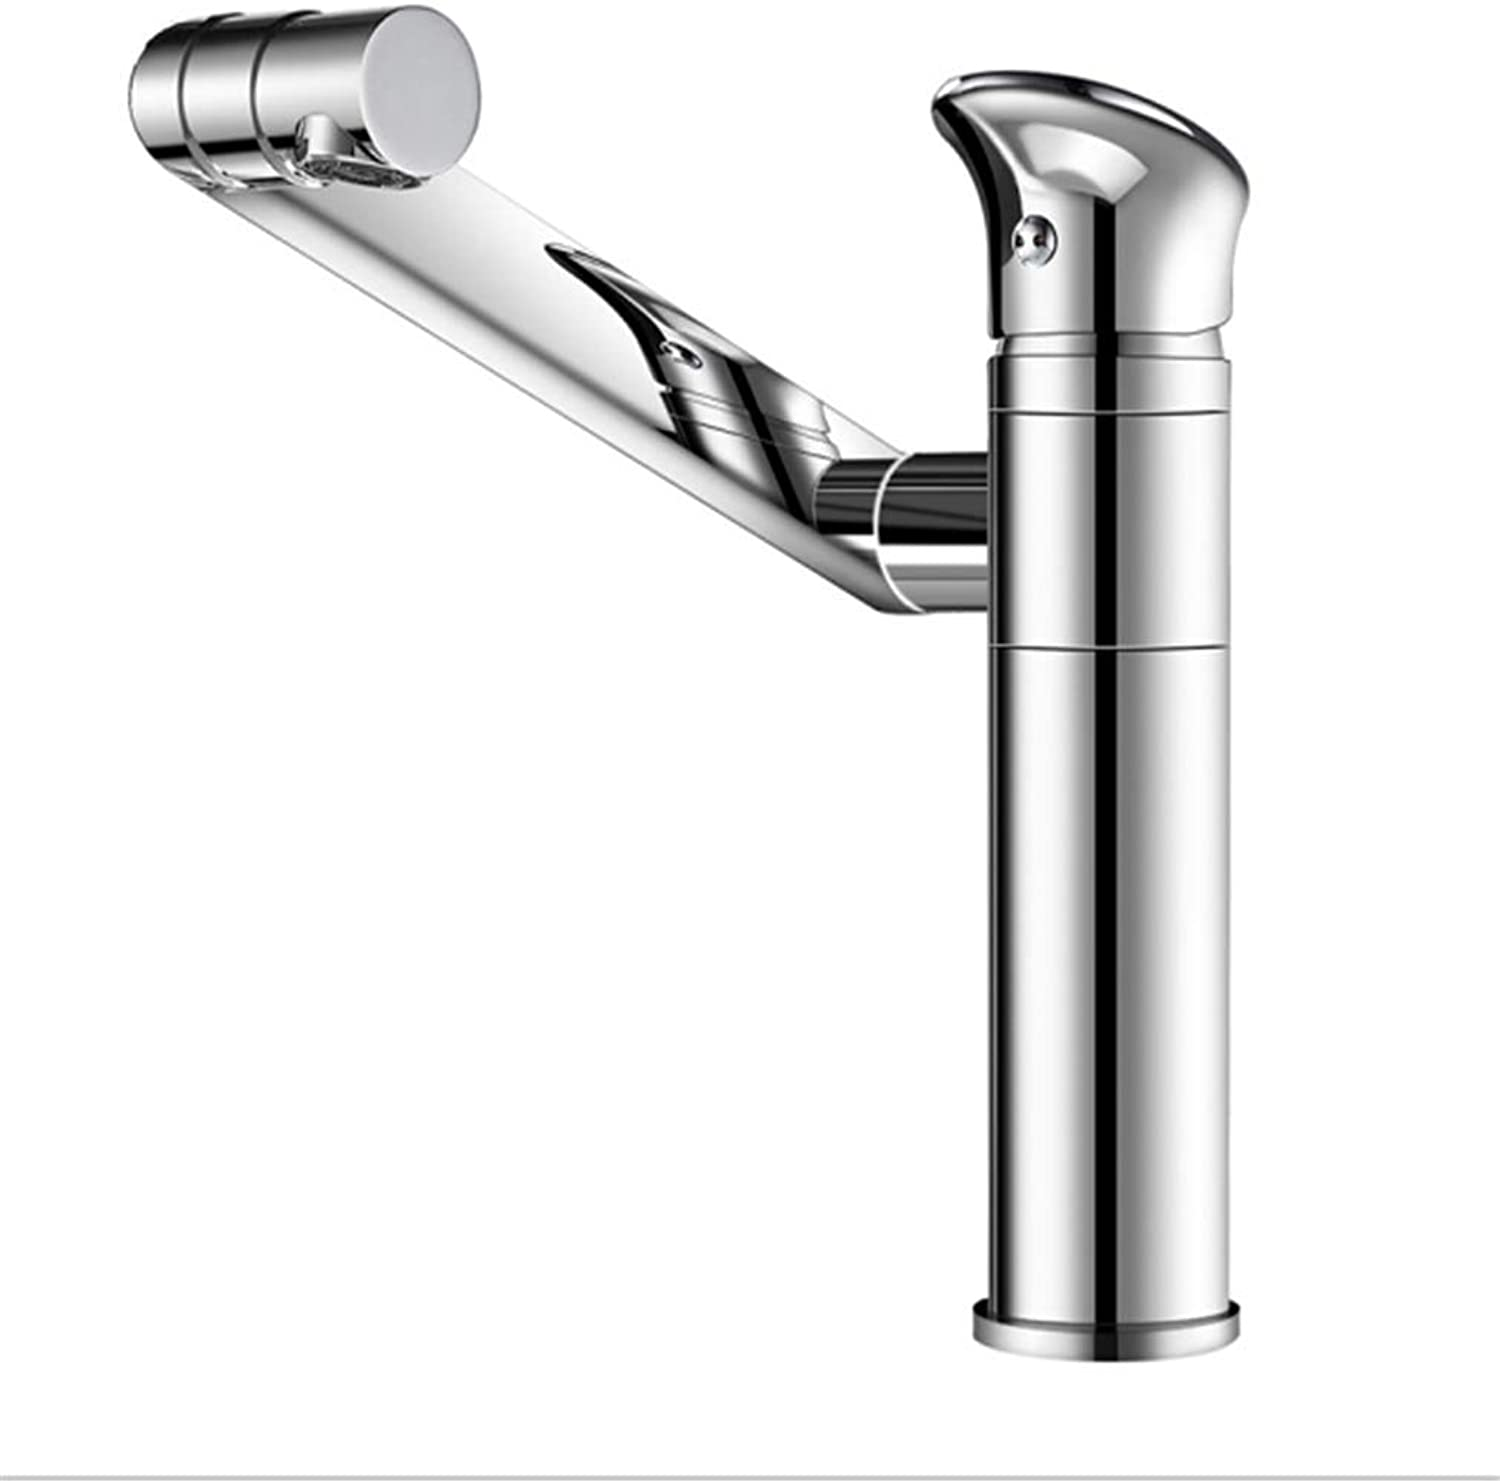 Kitchen Taps Faucet Modern Kitchen Sink Taps Stainless Steelsinkpot Faucet Hot and Cold Lucrative Cat redating Washbasin Faucet